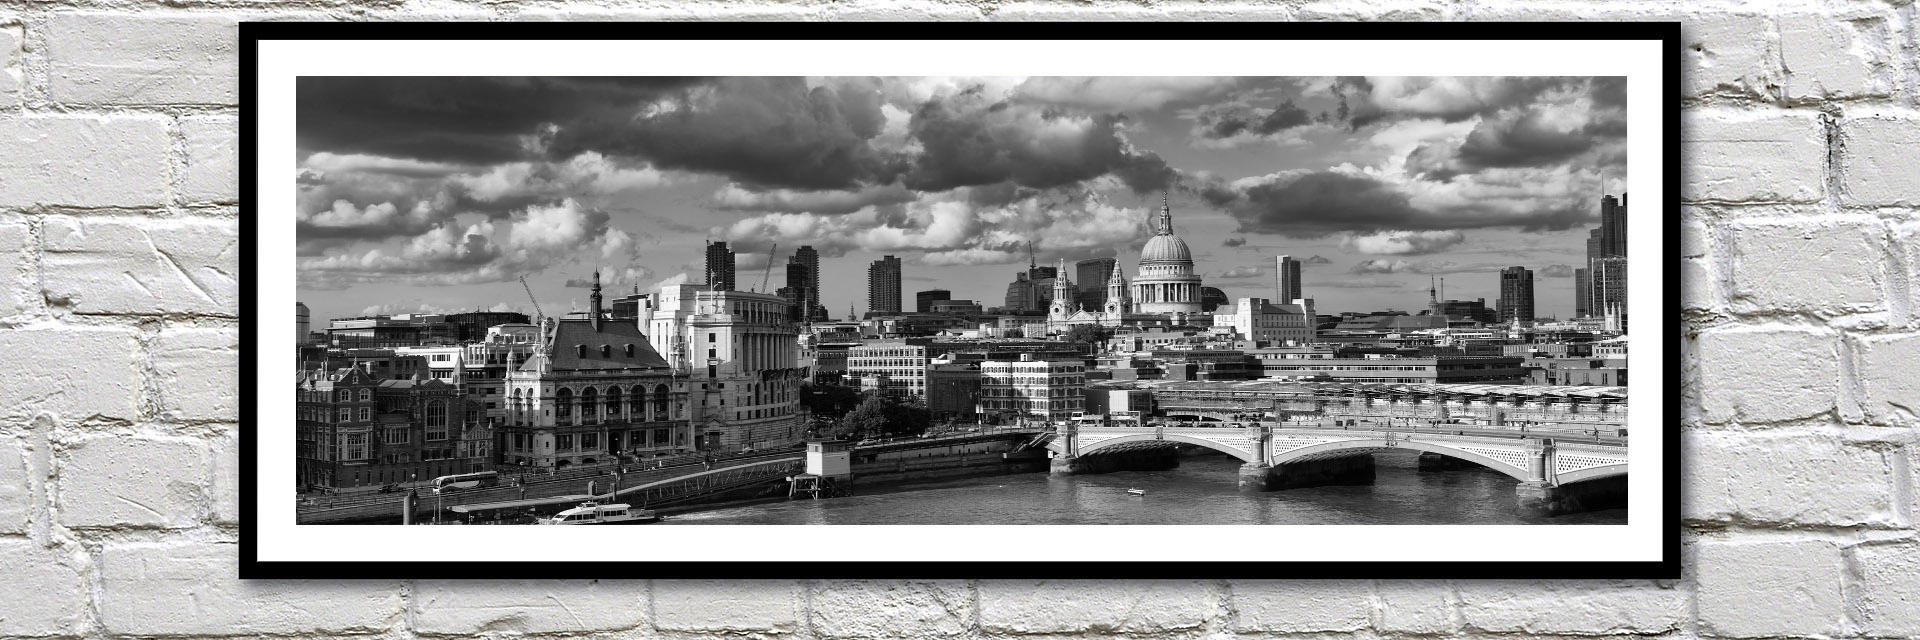 Office art ideas - prints of thebuildomgs in the historic city of London